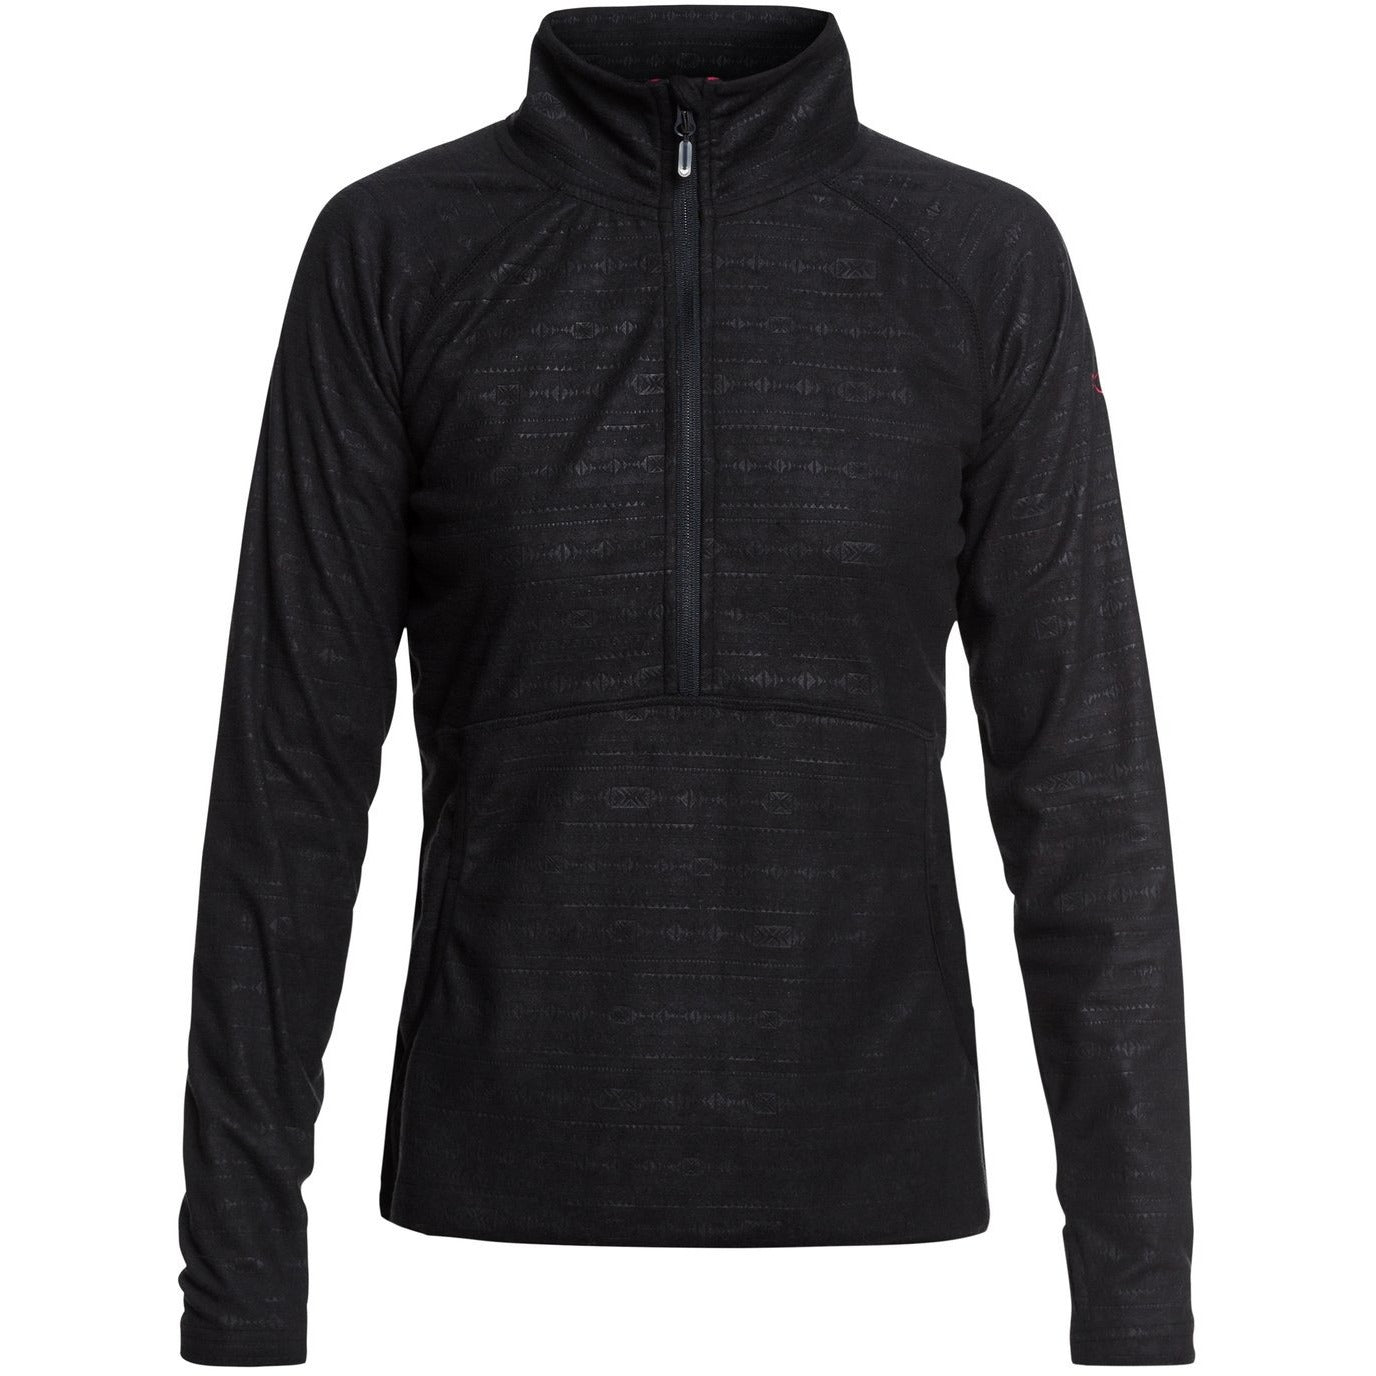 Roxy Cascade Technical Half-Zip Fleece - 88 Gear